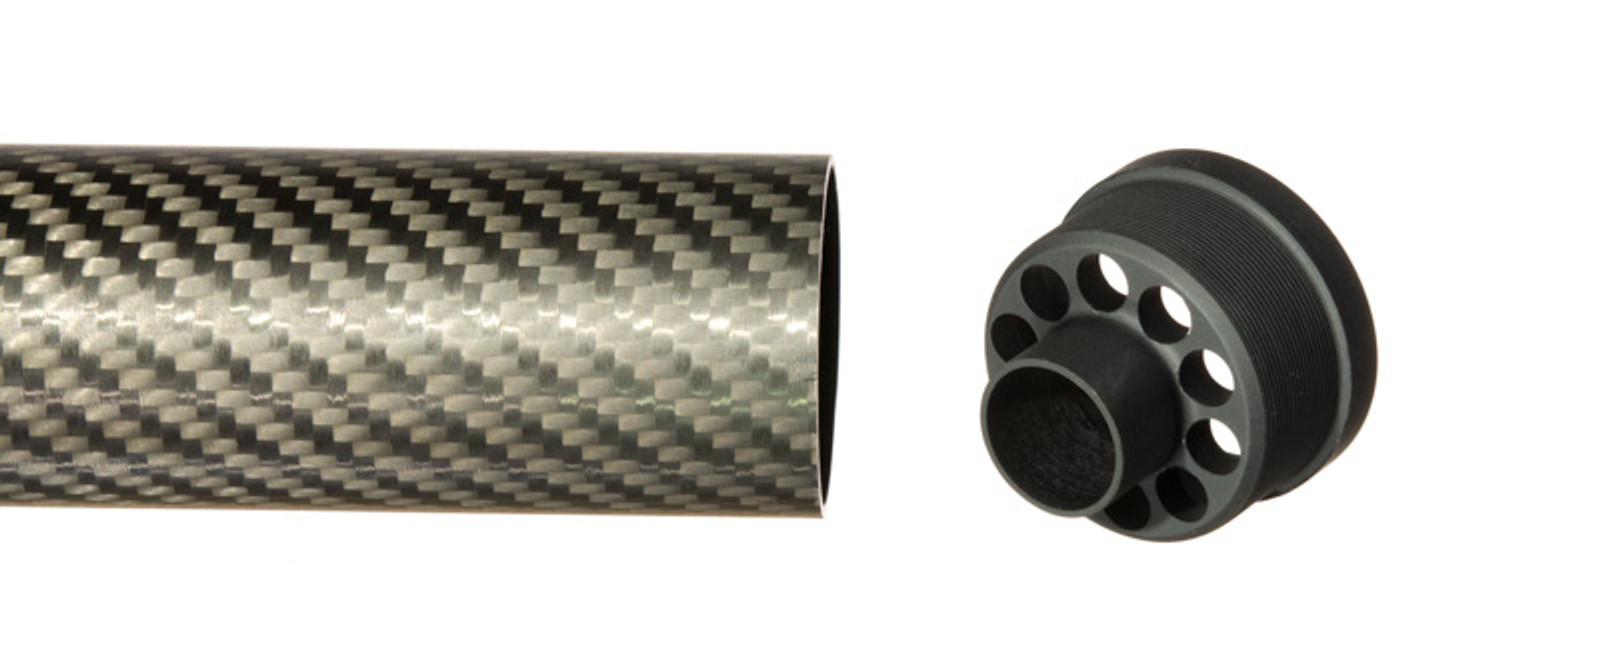 The end cap is used to finish the end of a carbon fiber tube.  it protects the tube end from damage and provides a clean finished appearance.